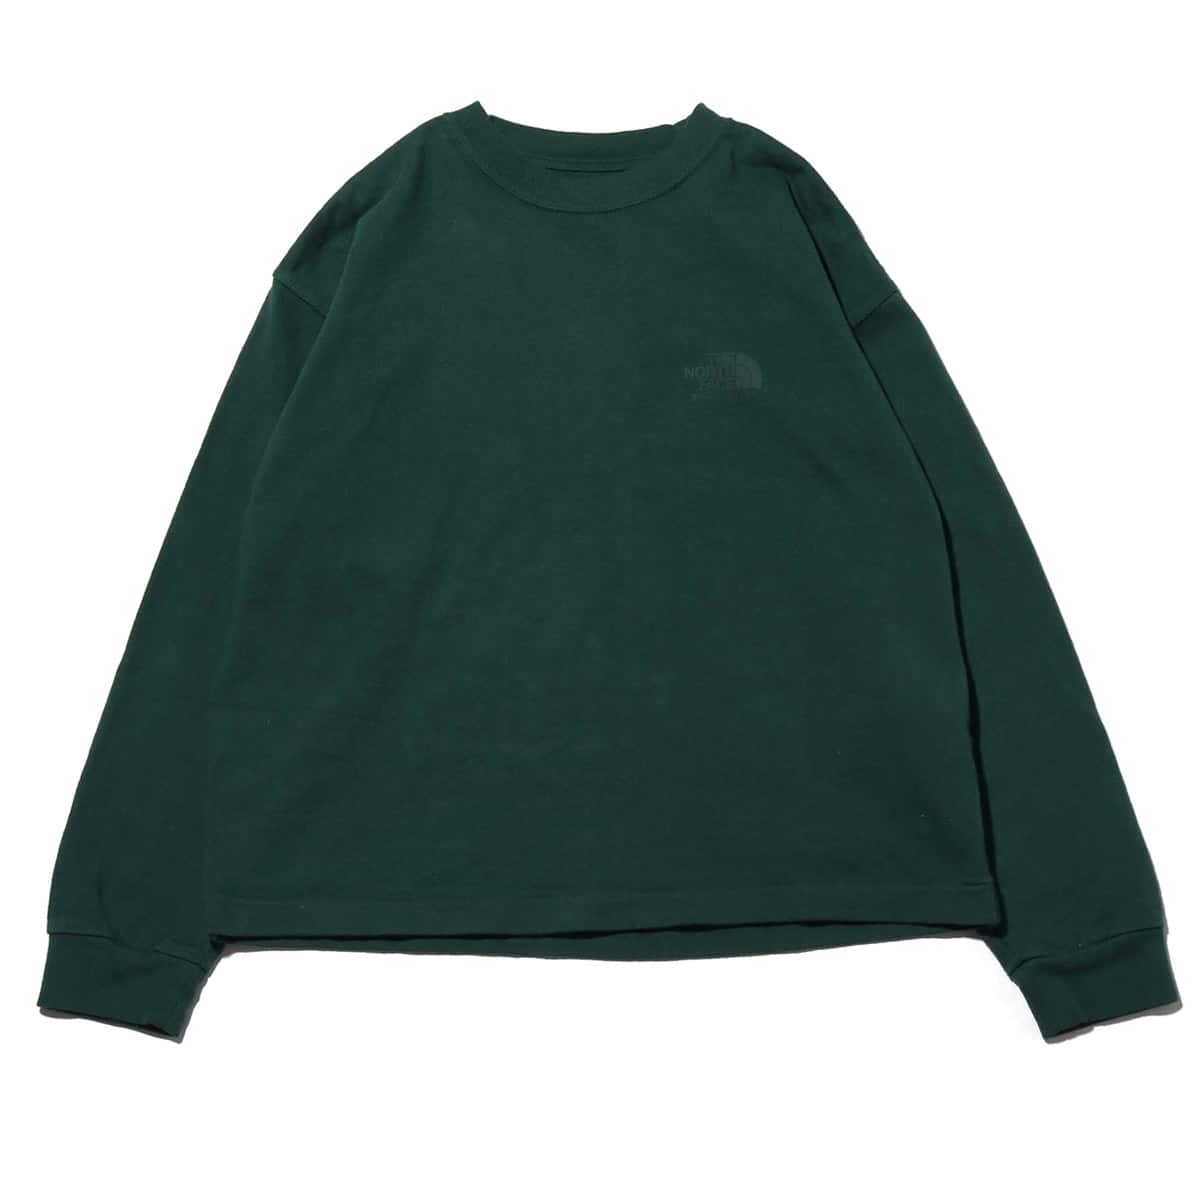 THE NORTH FACE PURPLE LABEL 8oz L/S LOGO TEE GREEN 19SS-I_photo_large